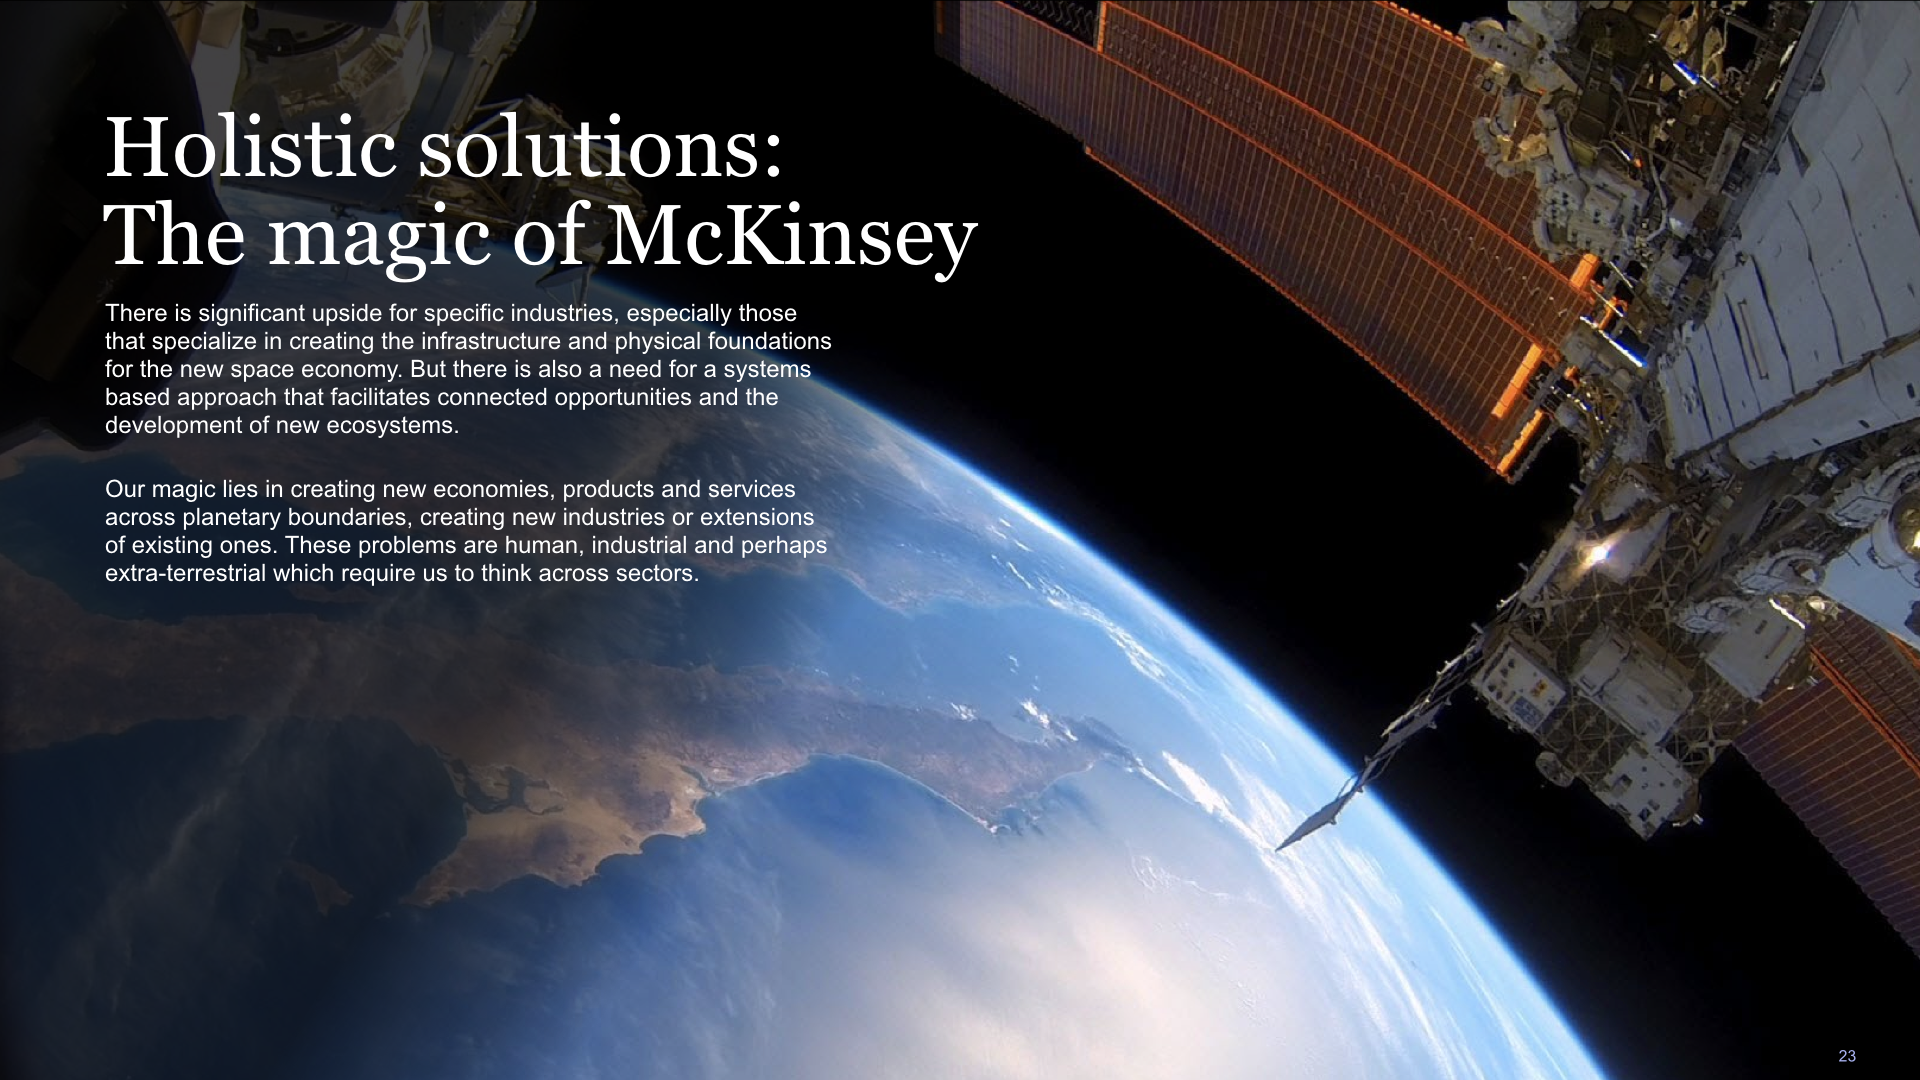 McKinsey_SpaceEconomy2019_CONSTRUCTION_overview_v12.023.png